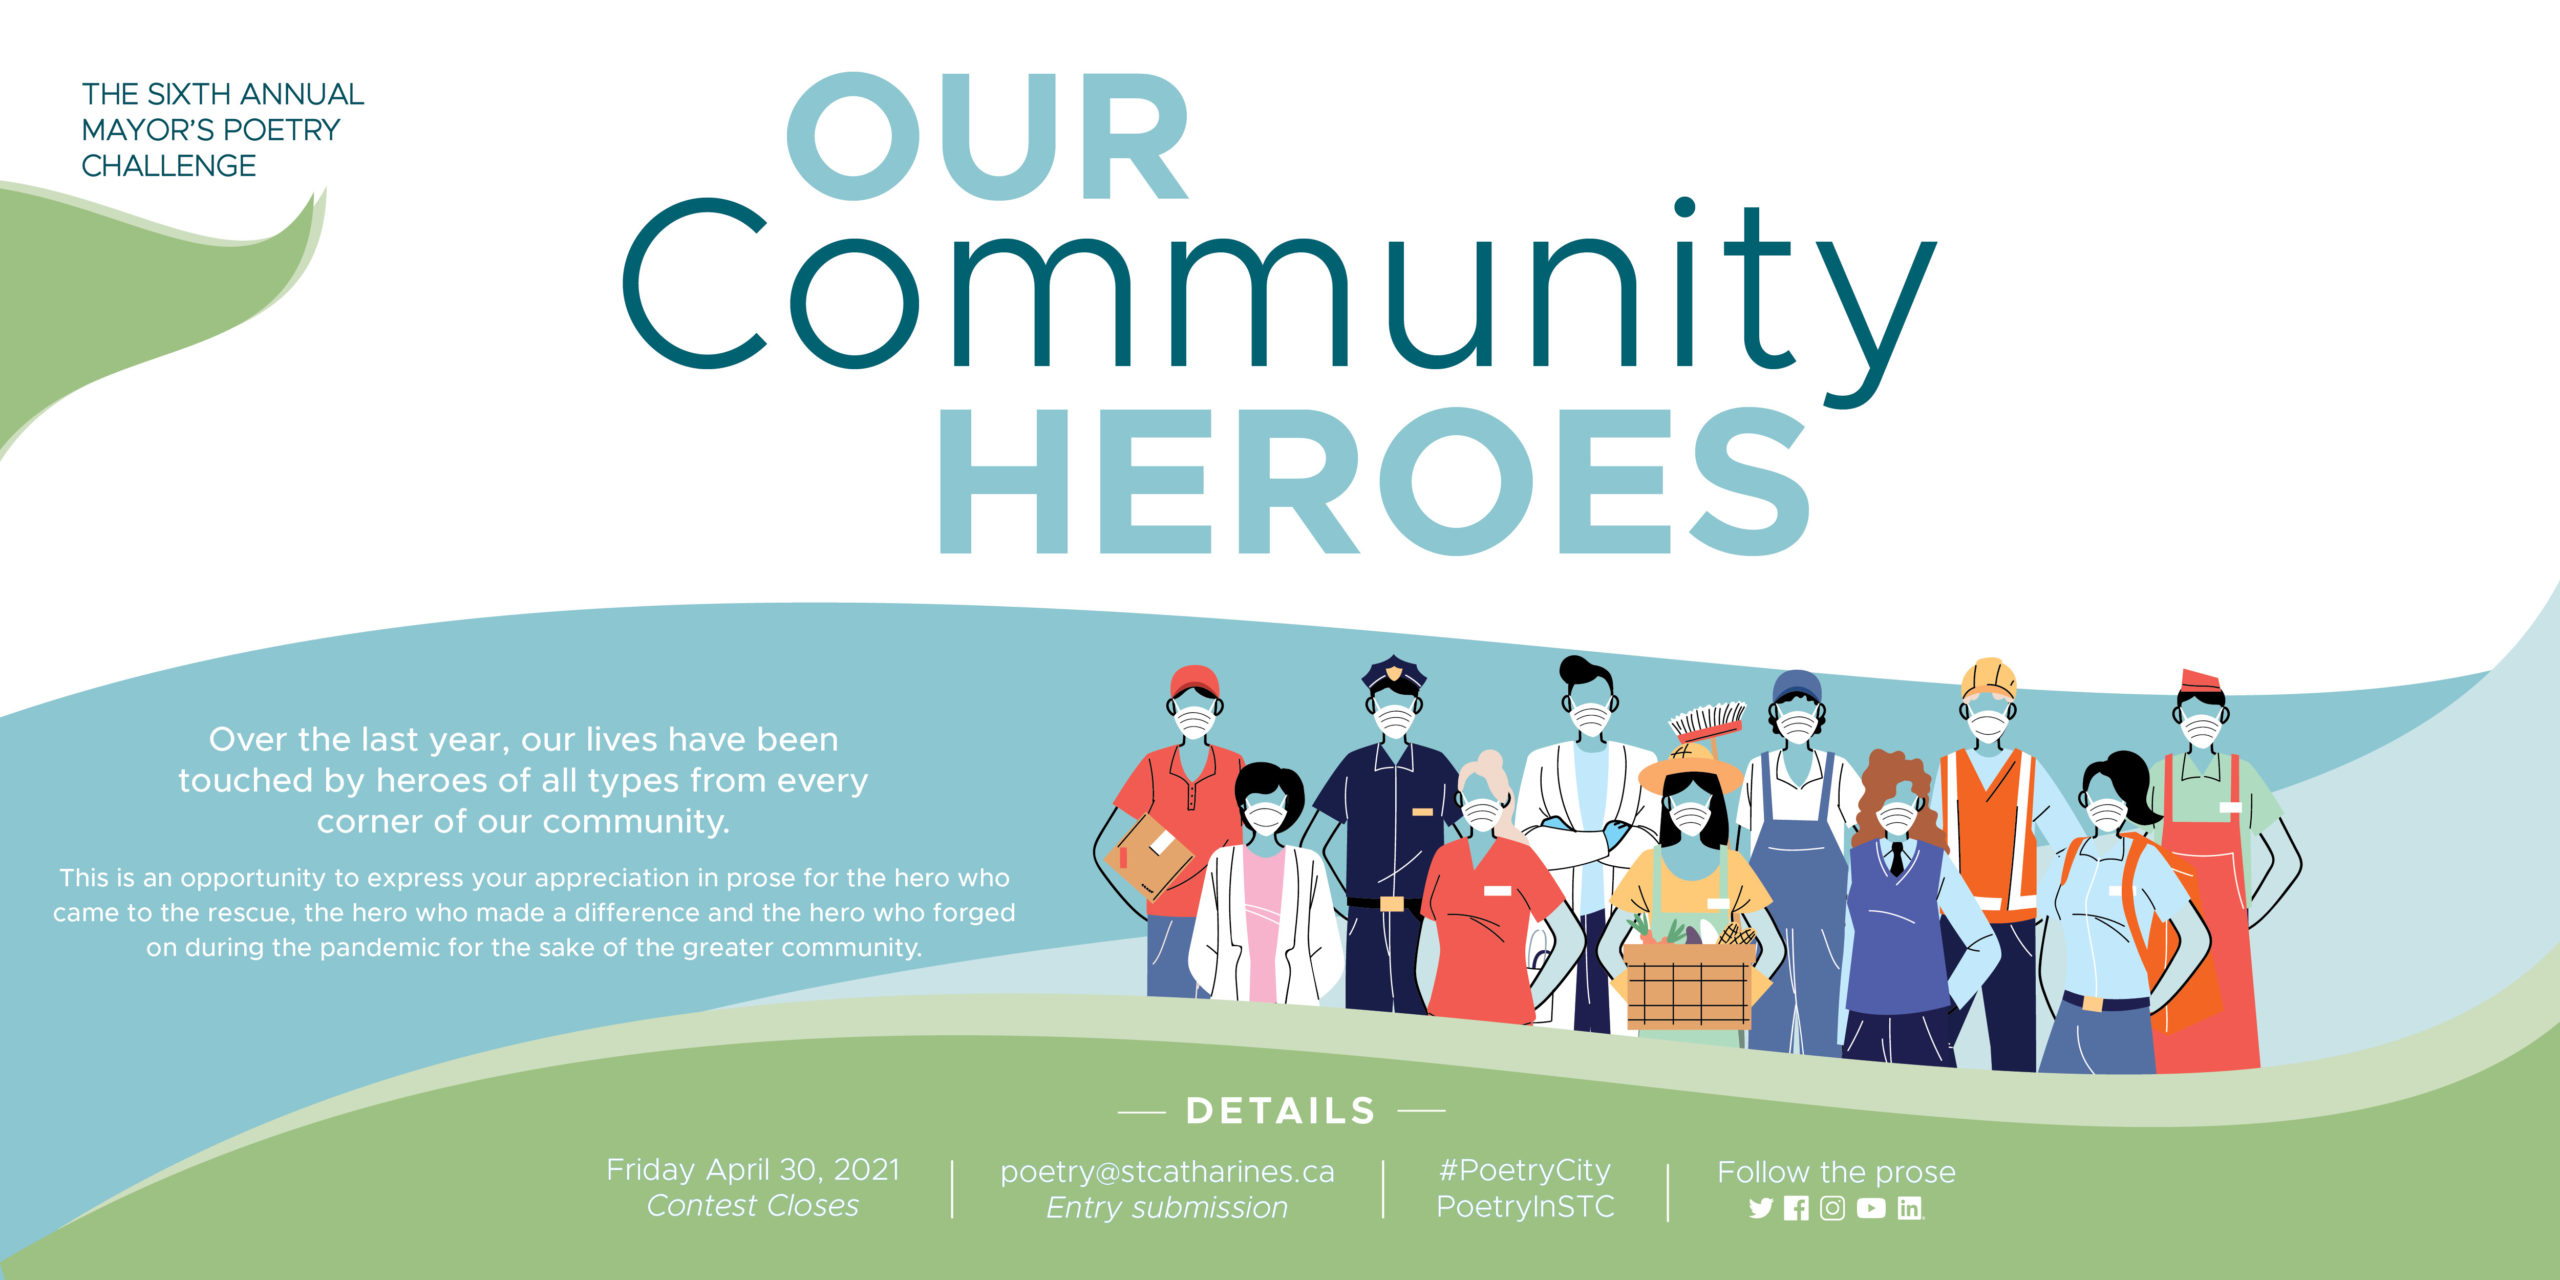 Mayor's Poetry Challenge celebrates 'Our Community Heroes'